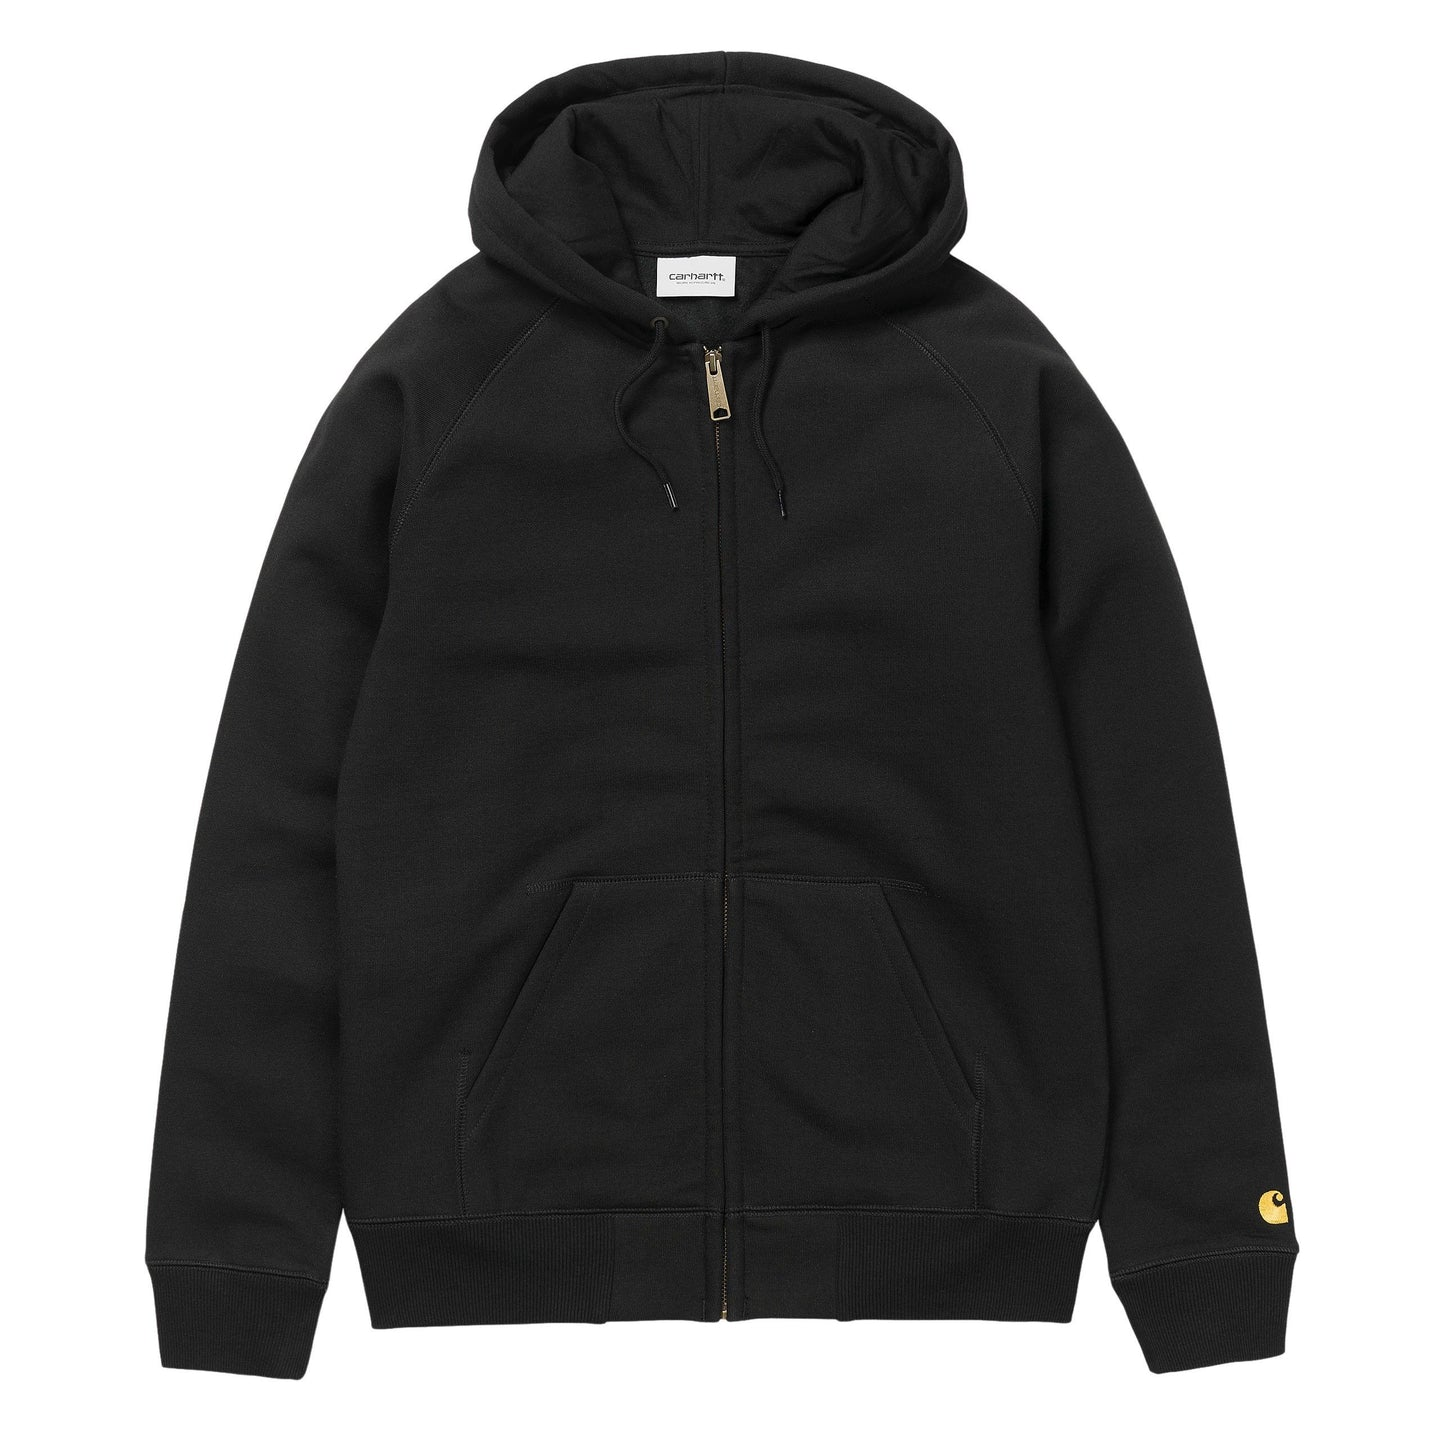 Carhartt WIP Hooded Chase Jacket - Goldjunge-Store